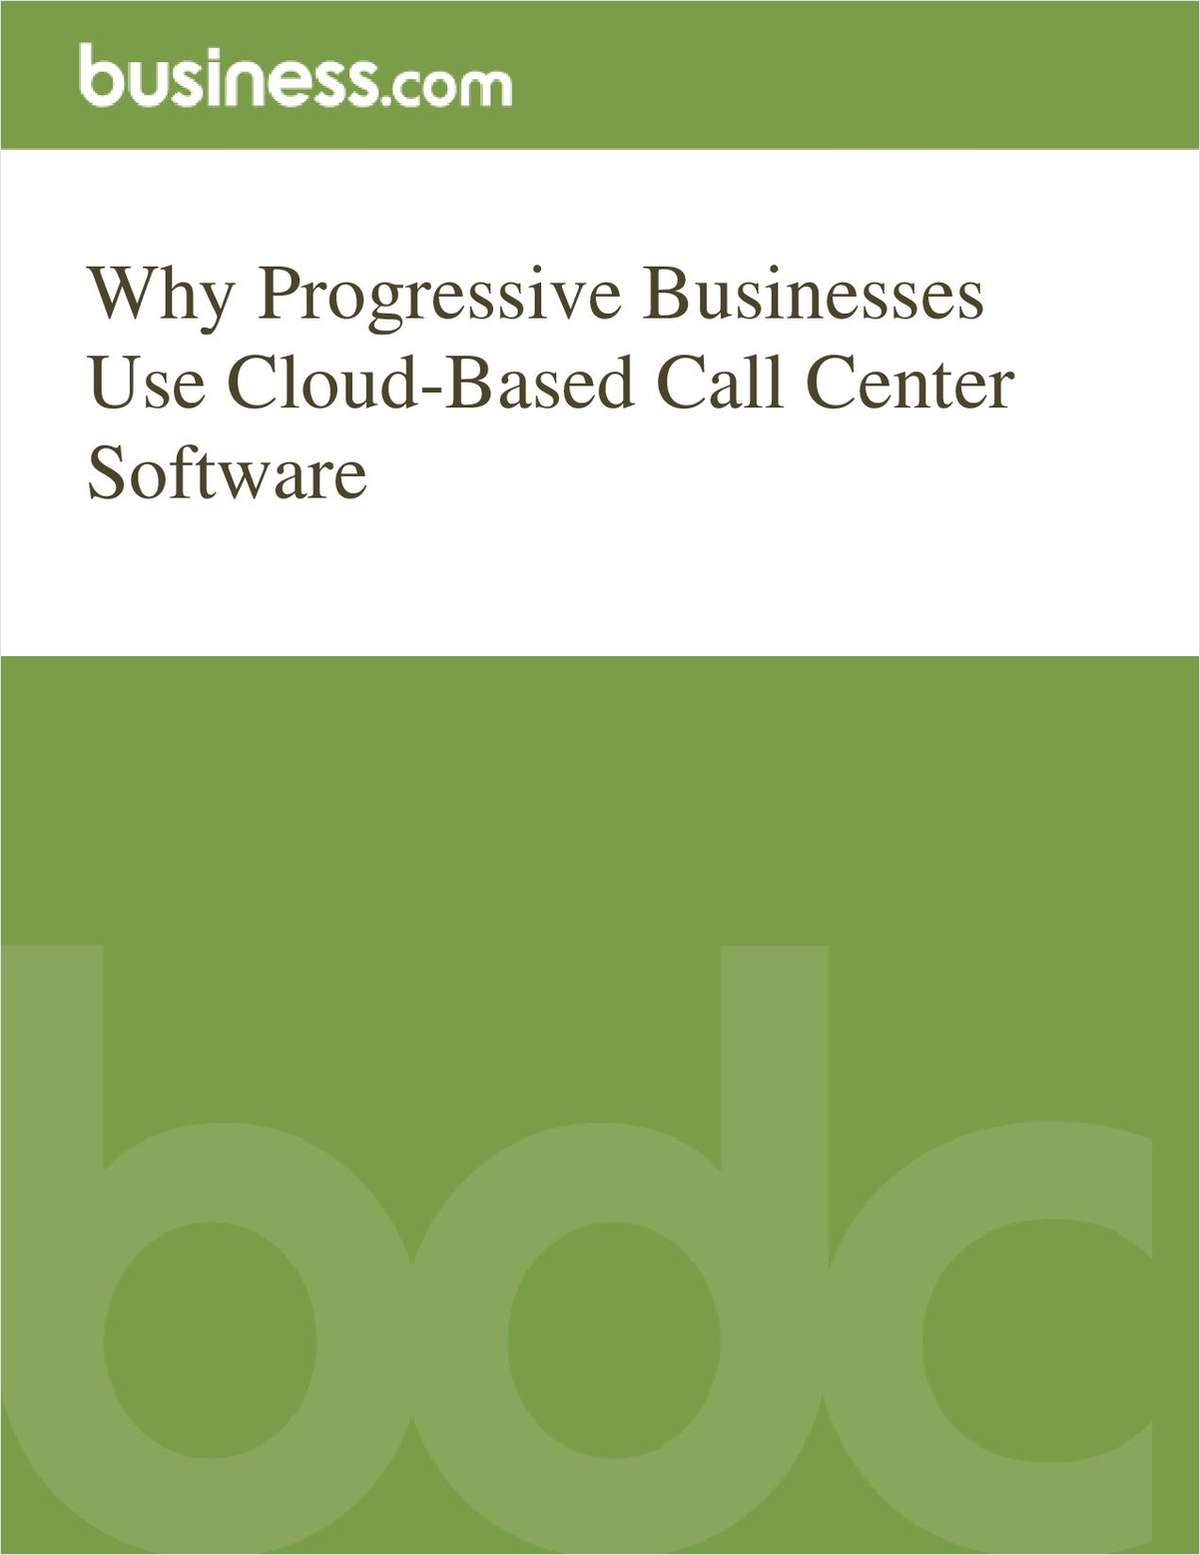 Why Progressive Businesses Use Cloud-Based Call Center Software